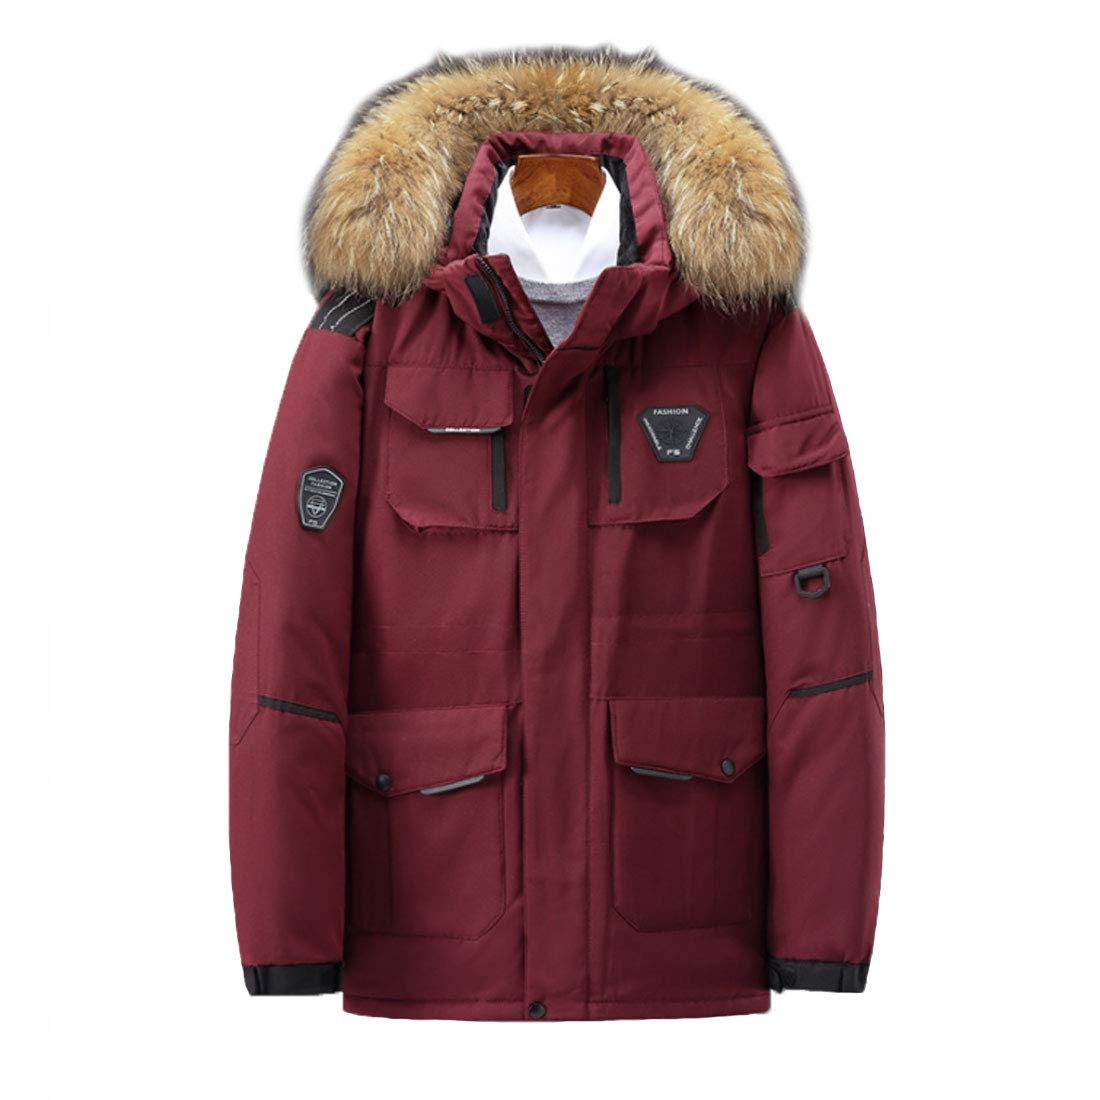 HZCX FASHION Men's Thick Outdoor Down Coats Couples Winter Parka with Fur Hood